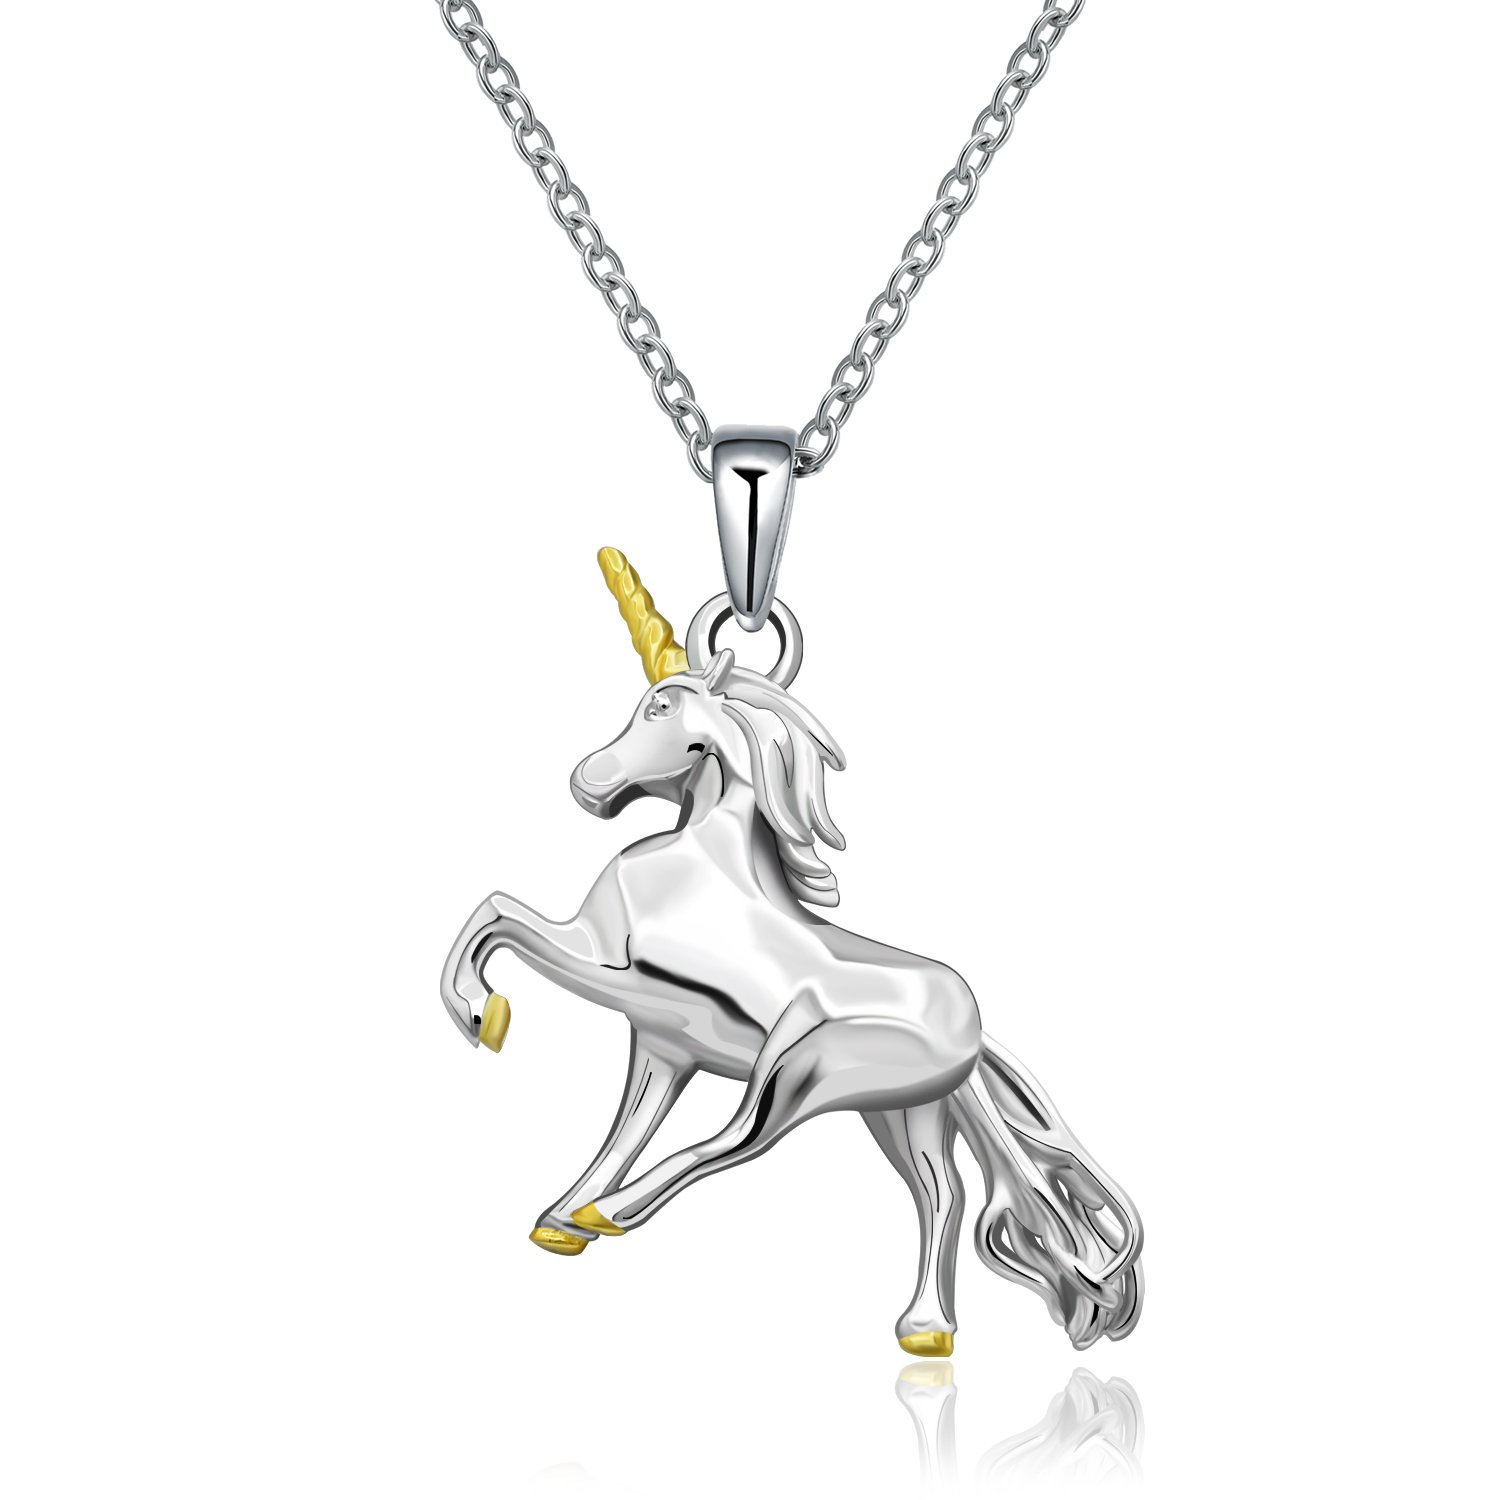 MONBO Silver Unicorn Necklace Gift 925 Sterling Silver Fairytale Unicorn Pendant Necklace for Women, Girls, Kids (Fairytale Unicorn)